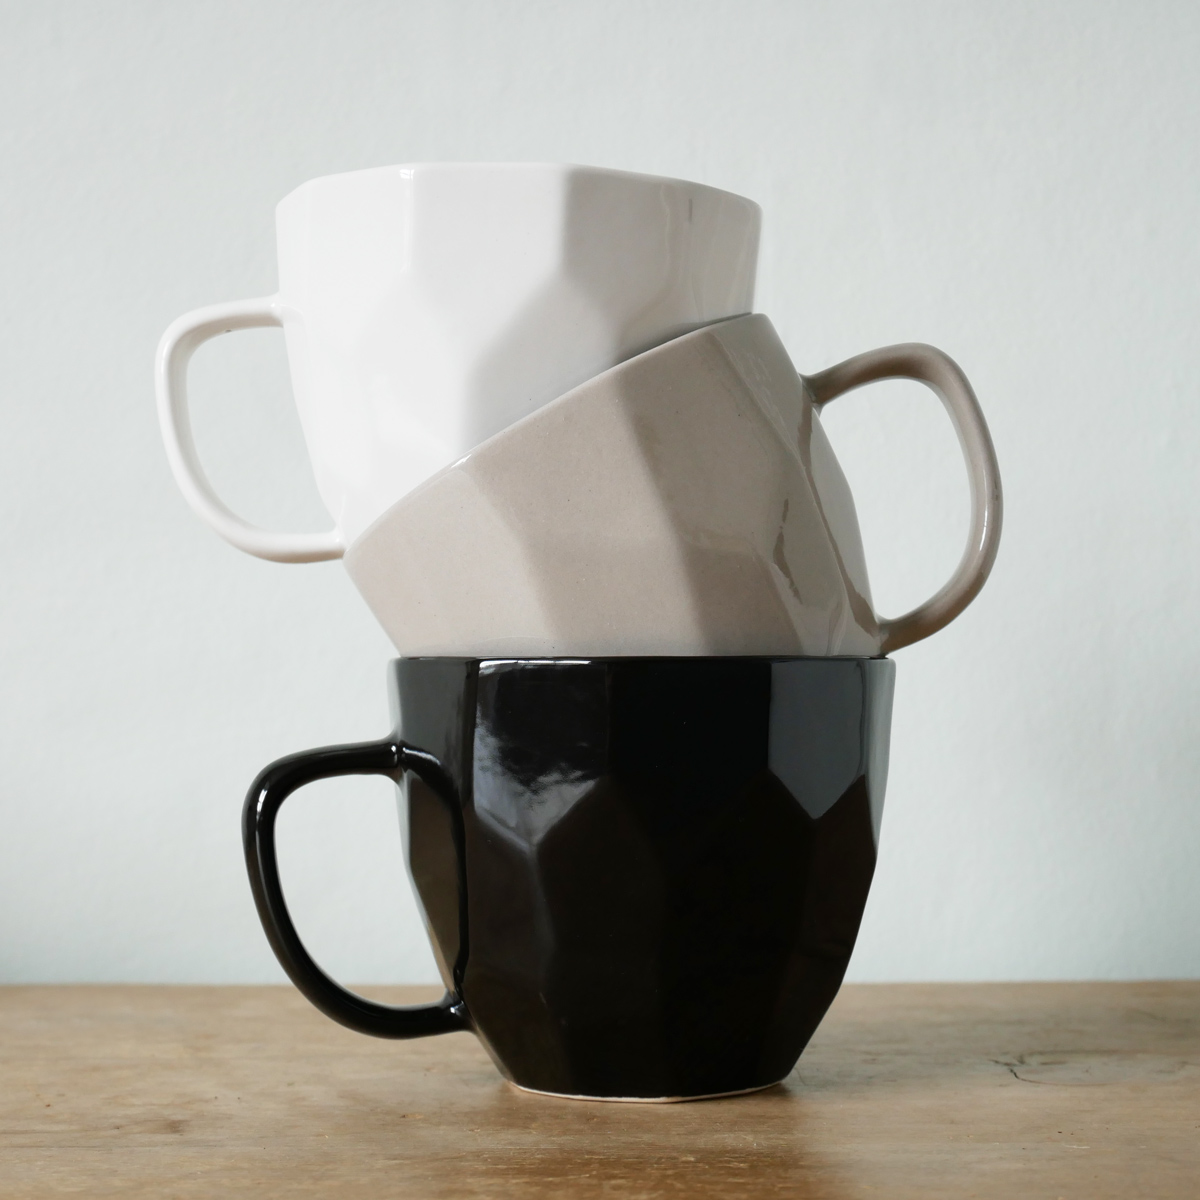 liv-interiors-geometric-mugs-in-black-grey-&-white-stacked